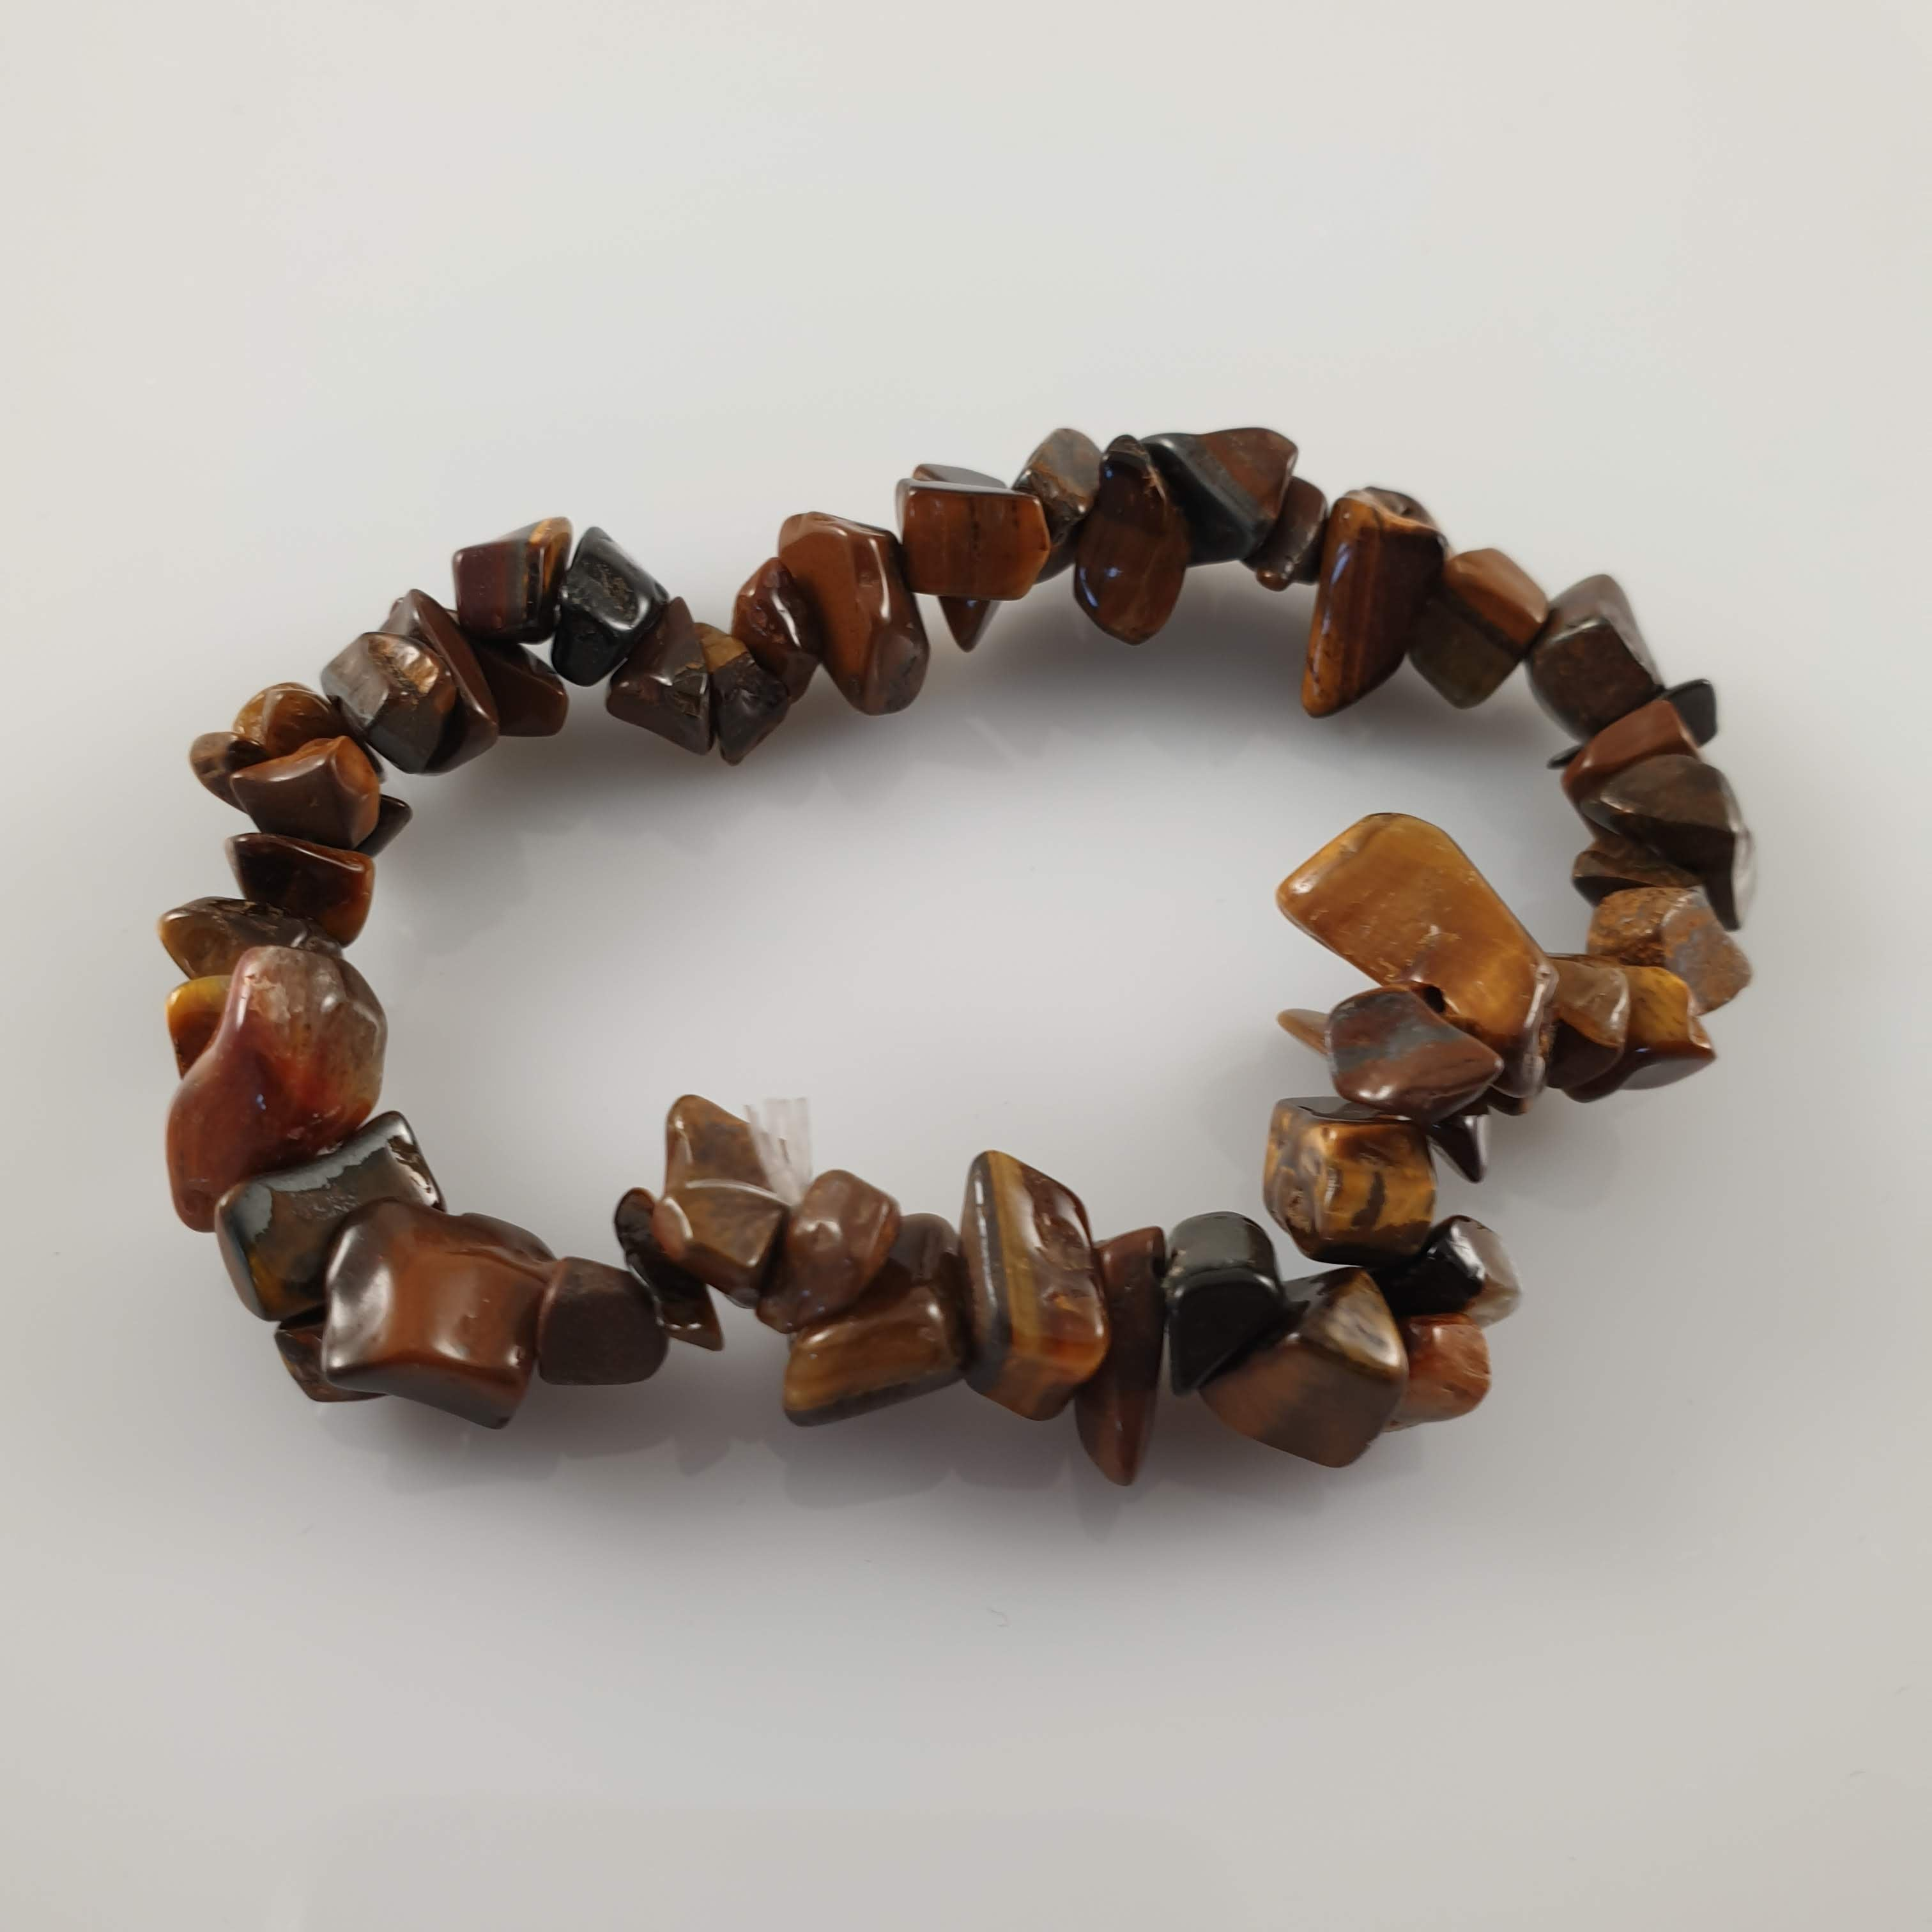 Tiger's Eye Chip Crystal Bracelet - Rivendell Shop NZ